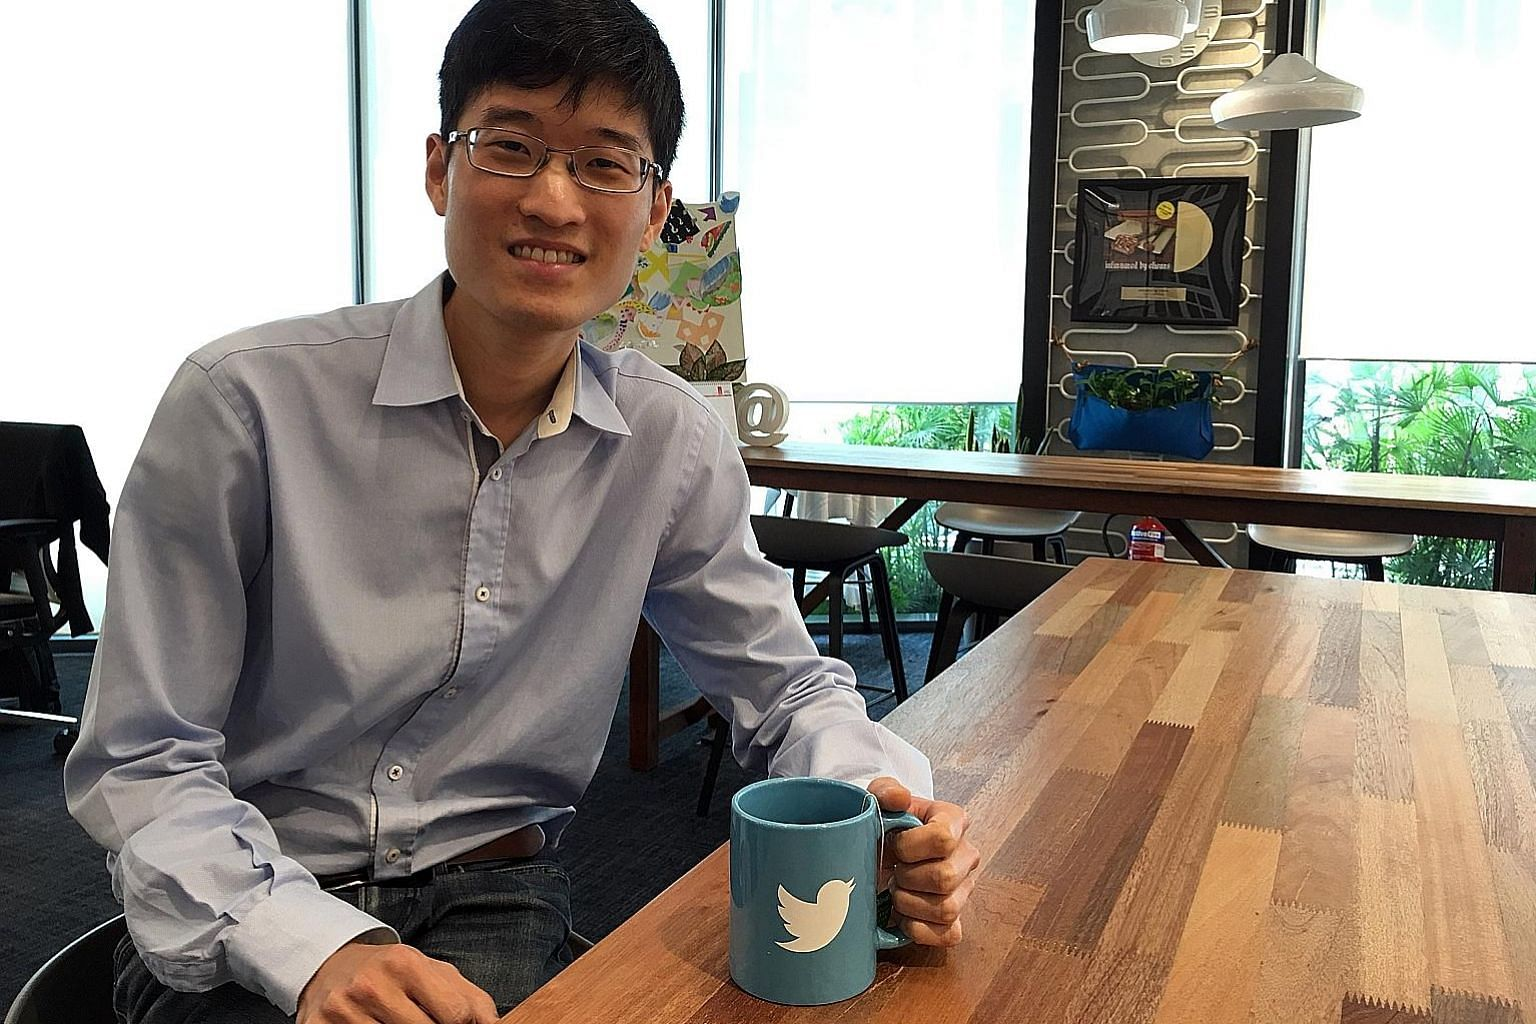 Mr Lee, who will head Twitter's data science team here, says the firm is looking to hire Singaporeans and will transfer data science knowledge from Silicon Valley.